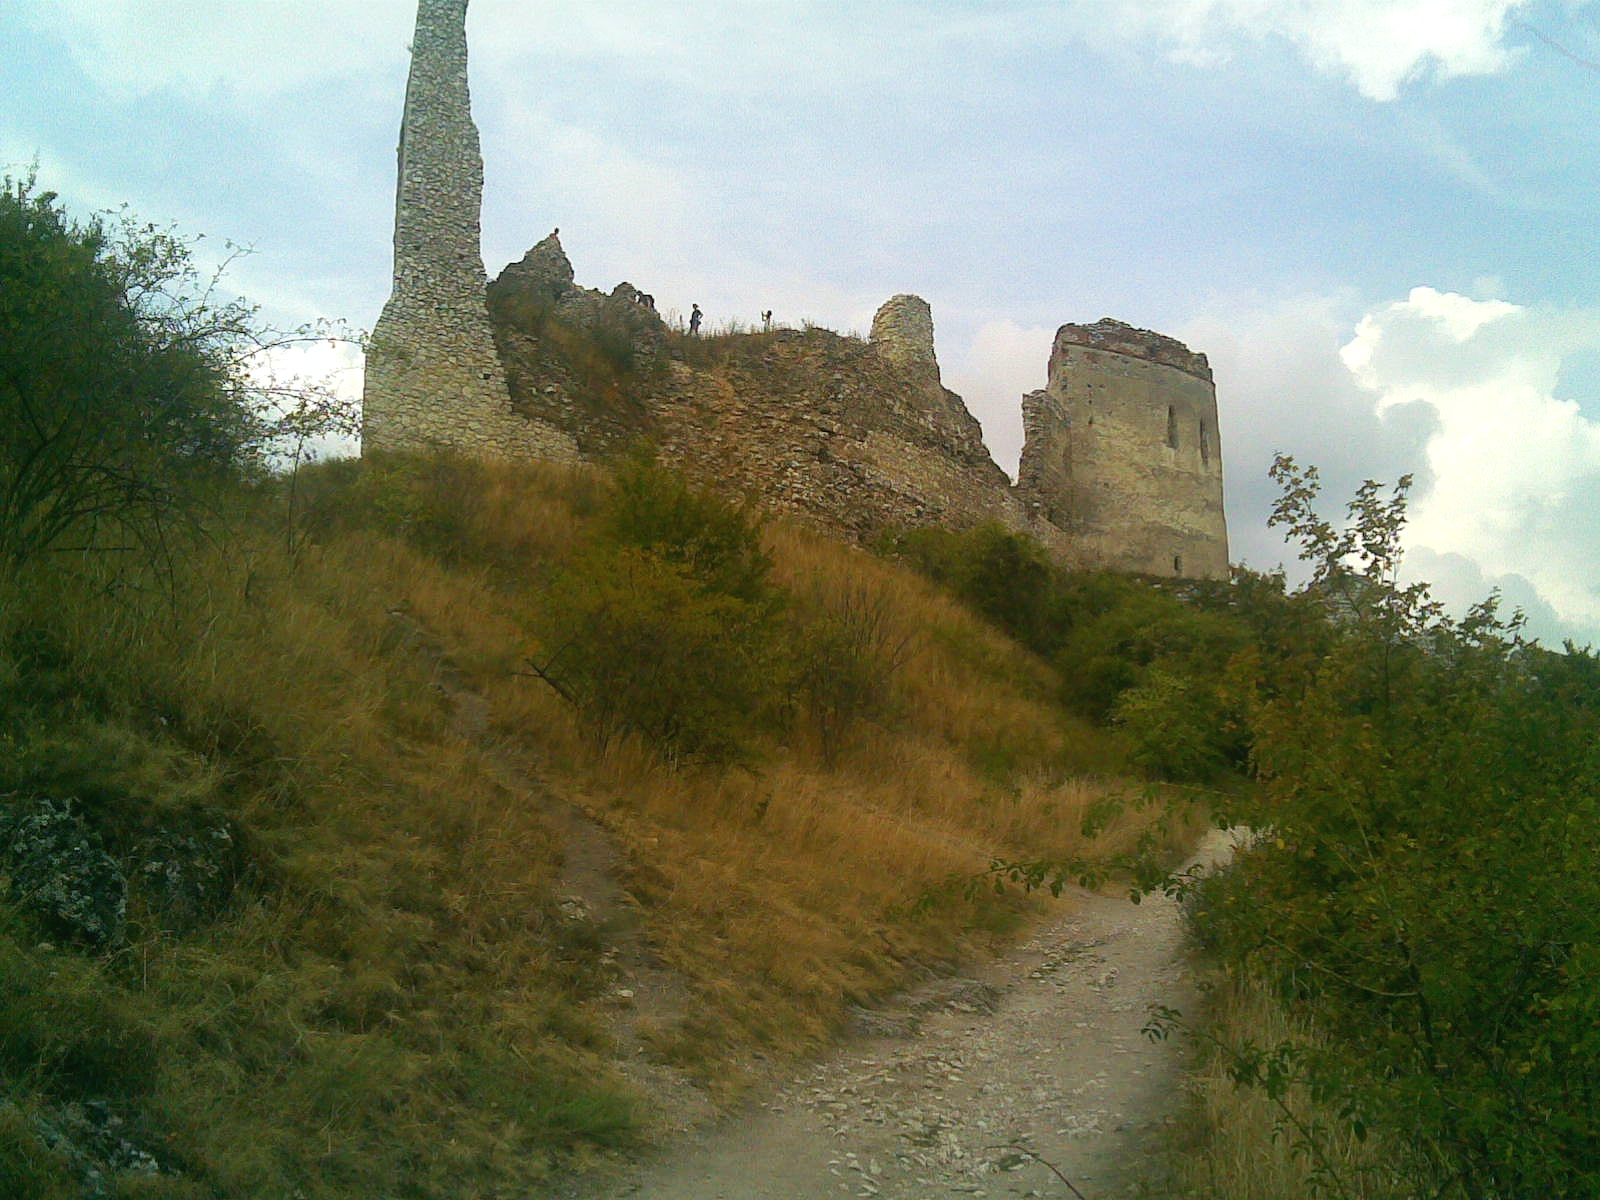 Photo of Čachtice castle by   Pavel Ševela   (sevela.p)  / Wikimedia Commons ,  CC-BY-SA-3.0